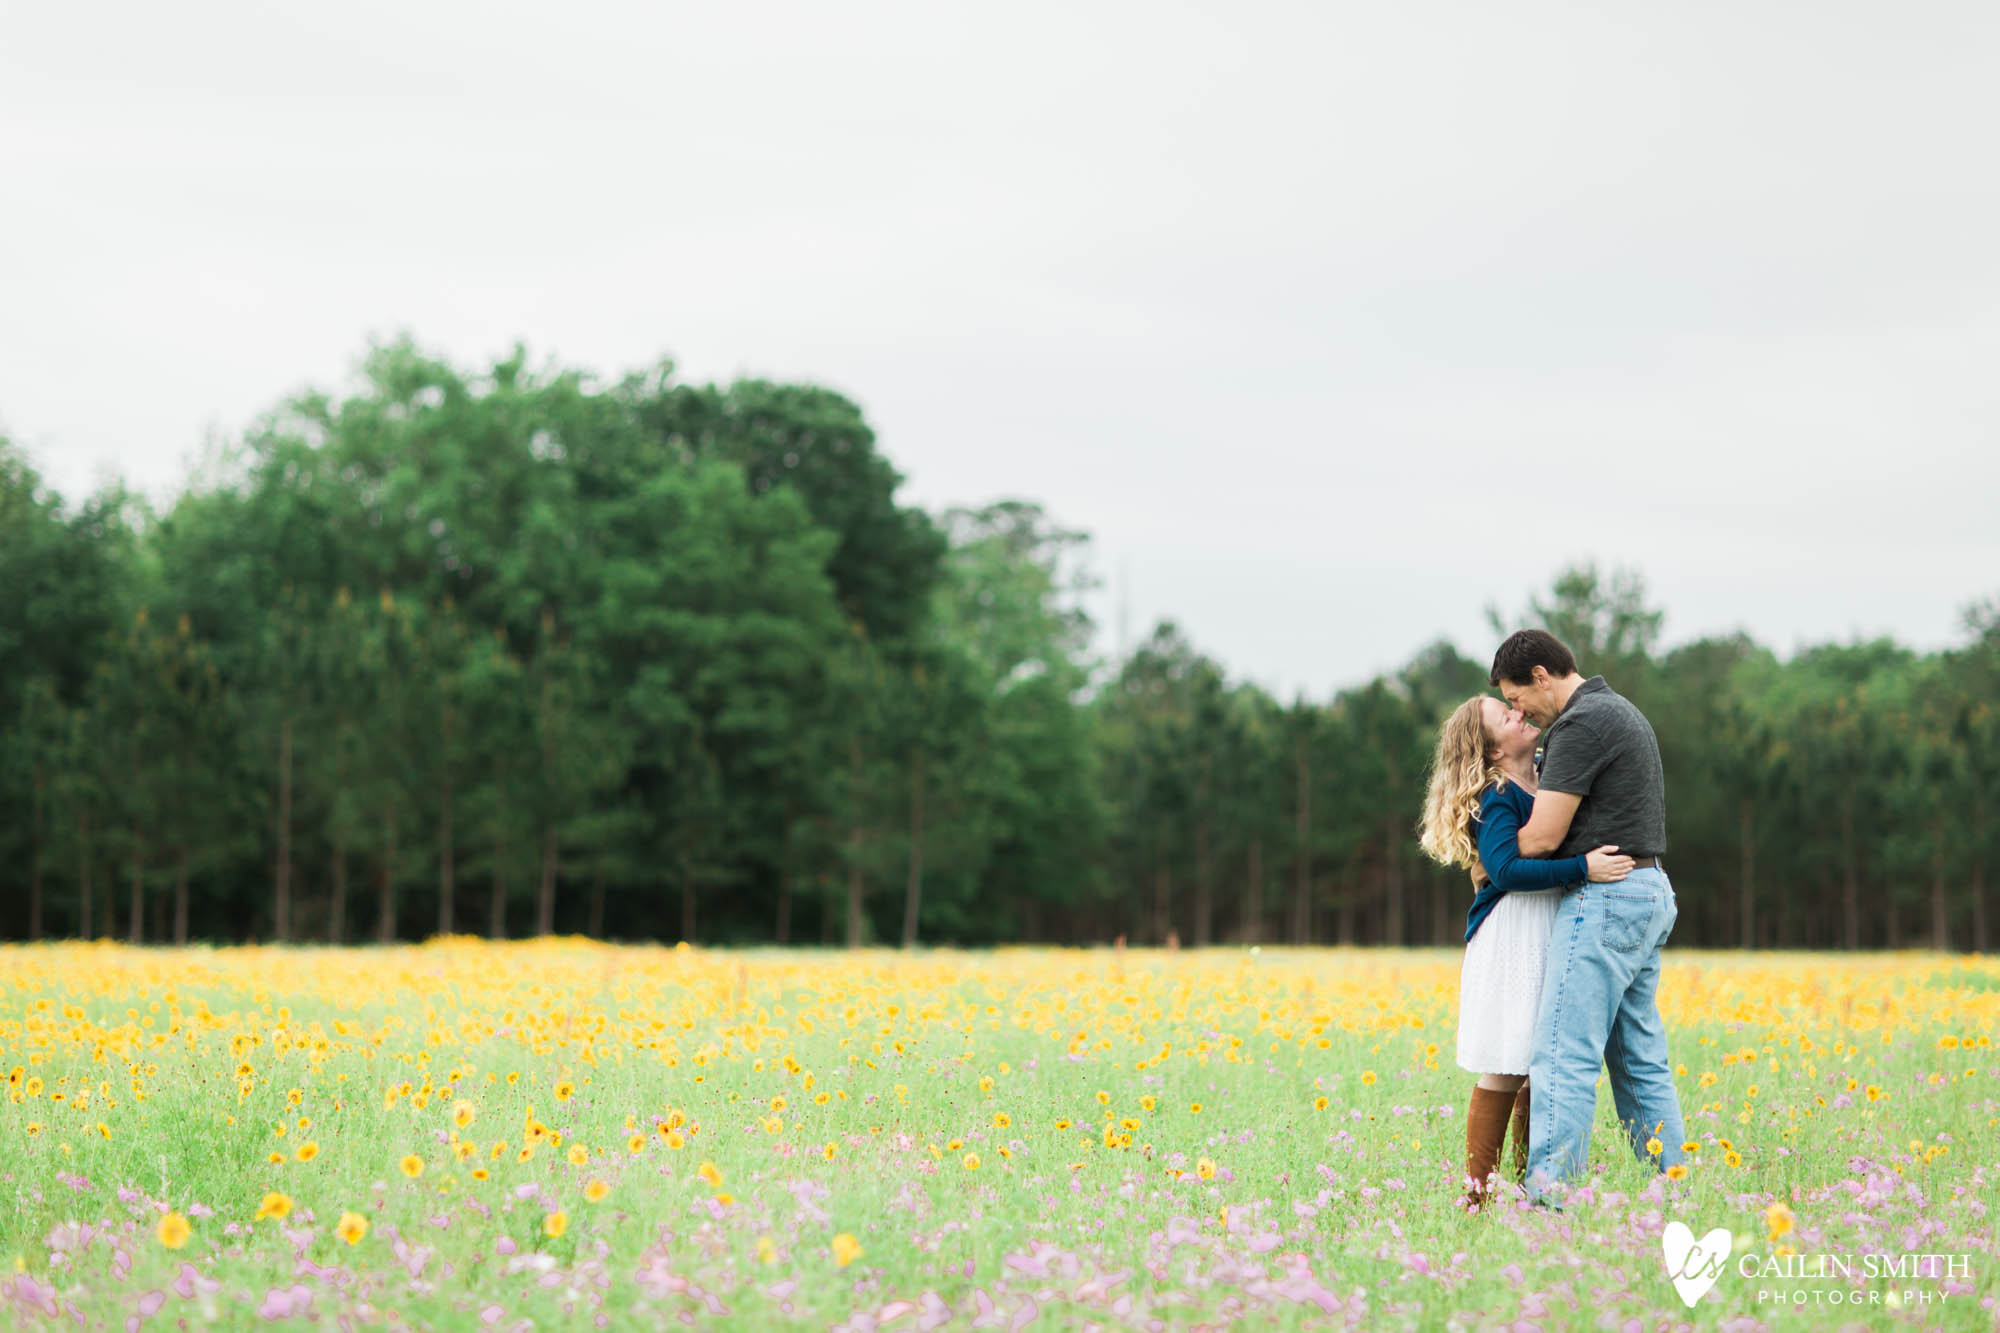 Christie_Nathan_Flower_Field_engagement_Photography_013.jpg